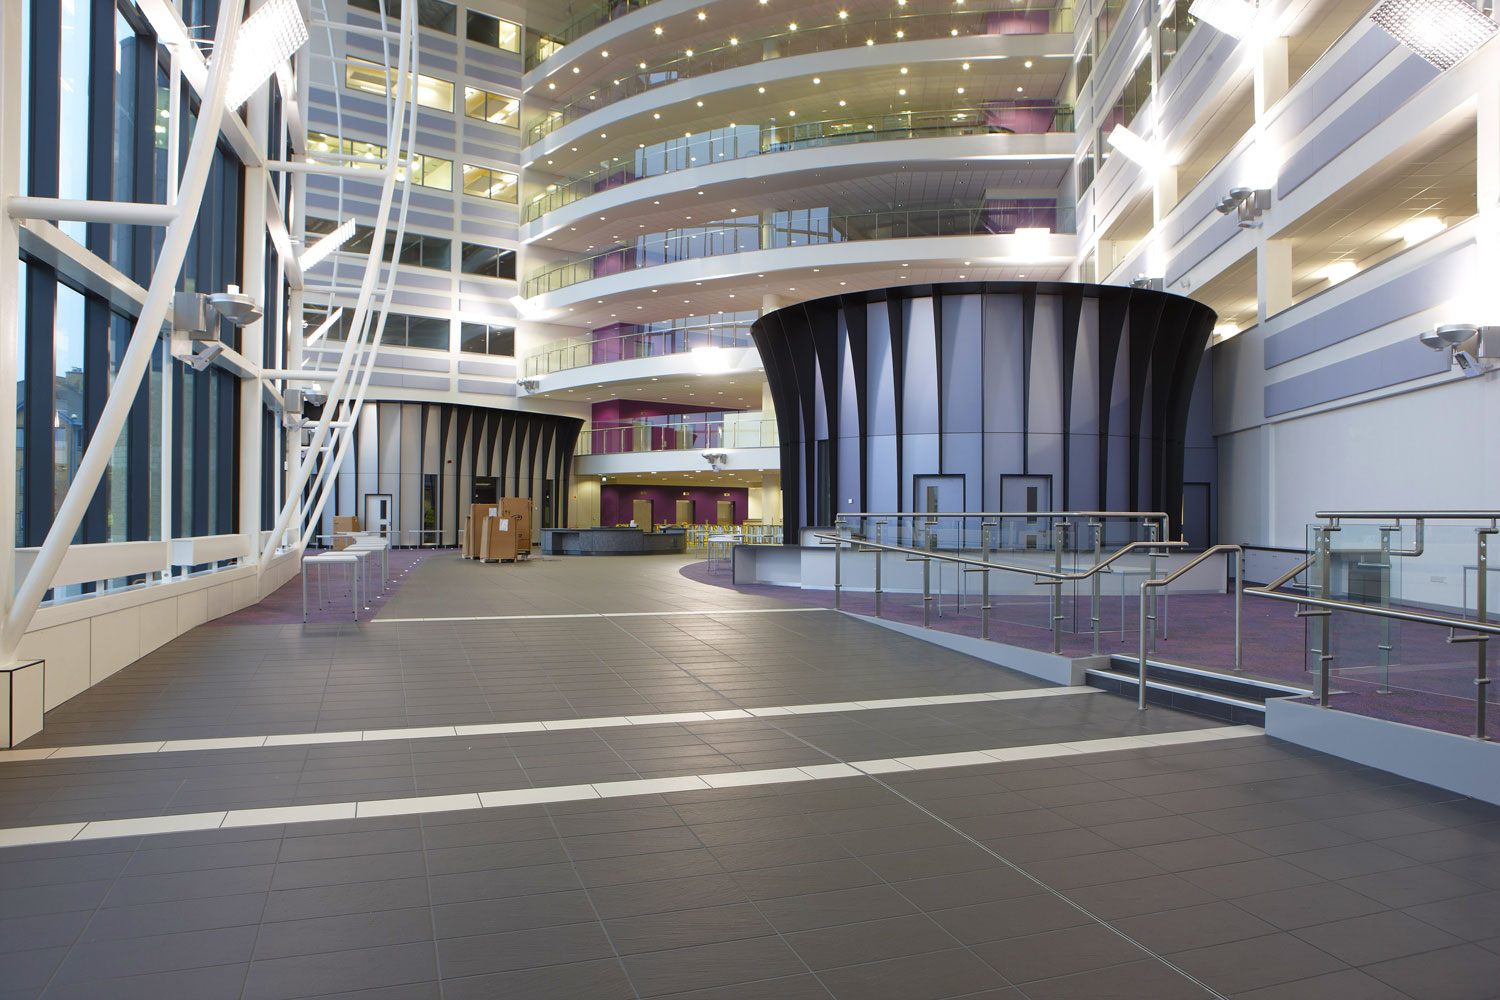 Sandwell College Atrium, West Bromwich, Birmingham | Interior Exterior Photography | Building Photography